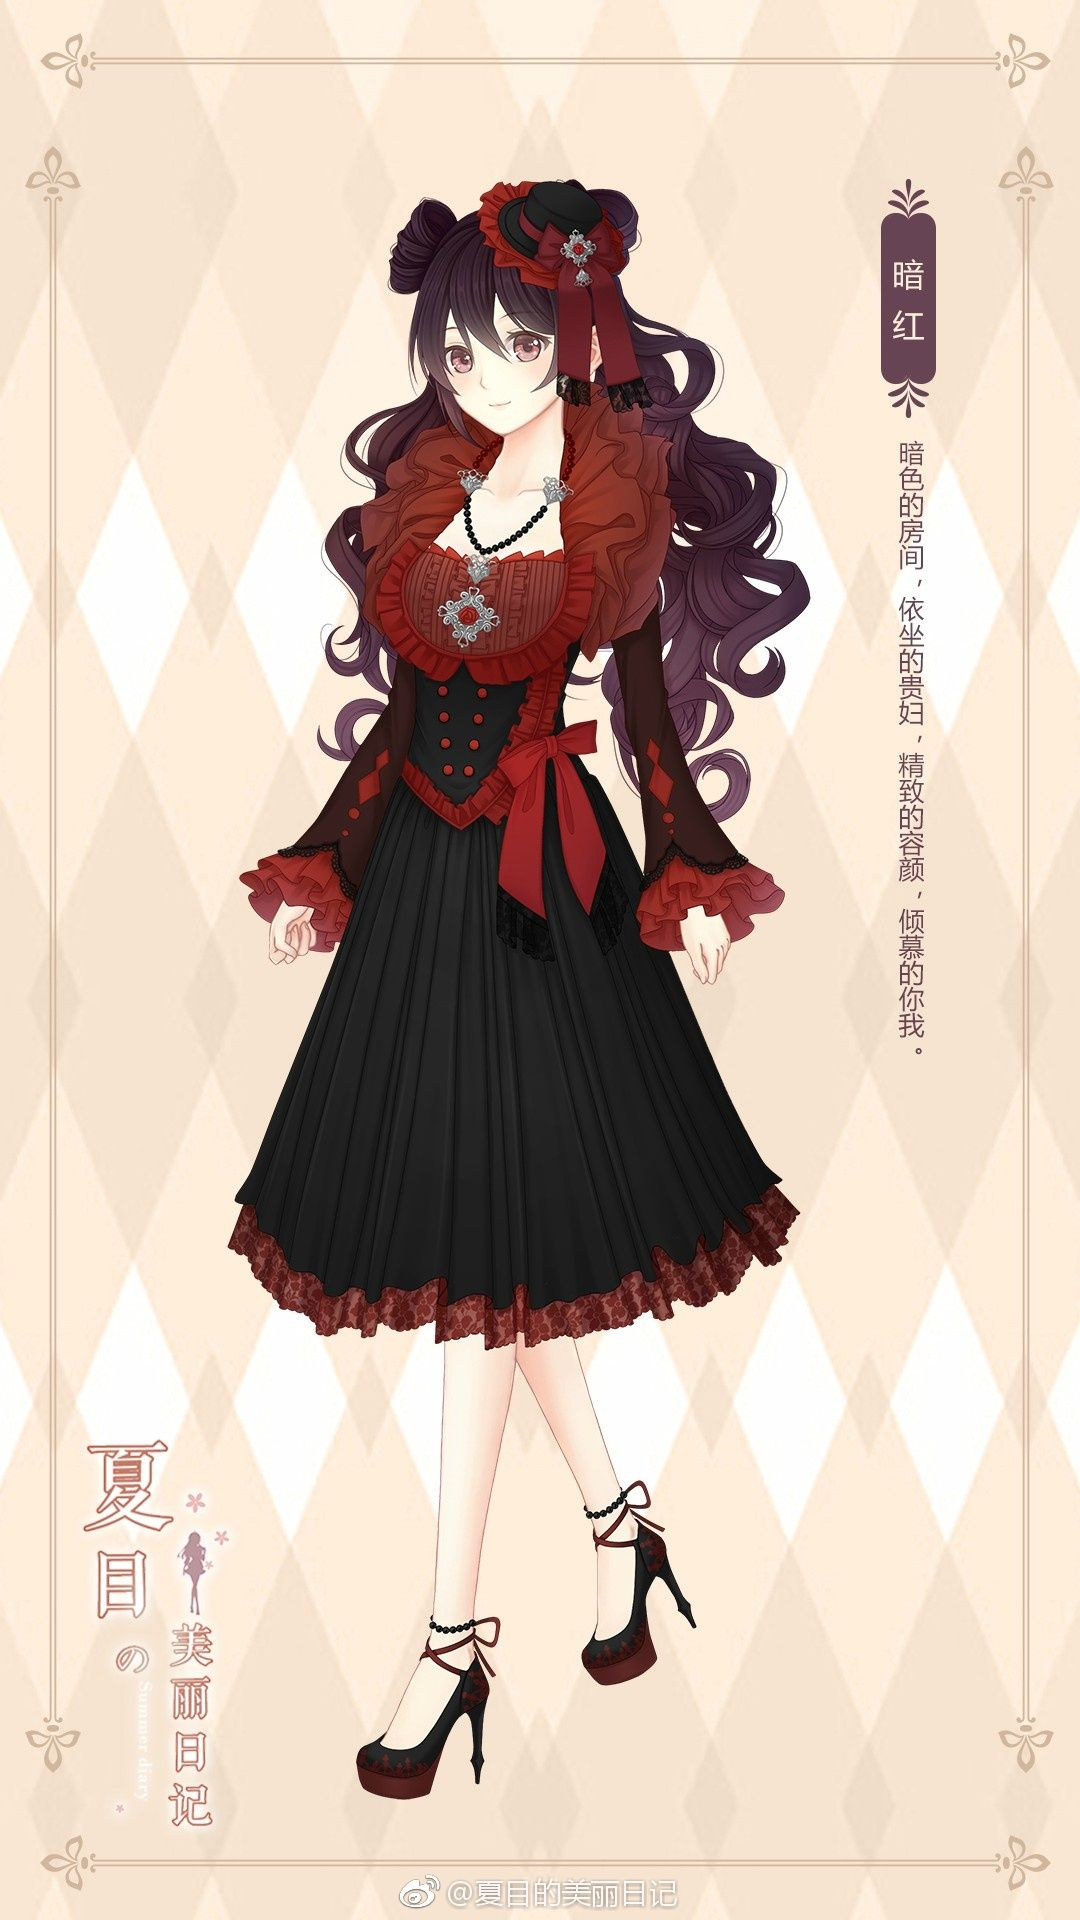 Dark red anime girl pink pink princess anime outfits dress up diary